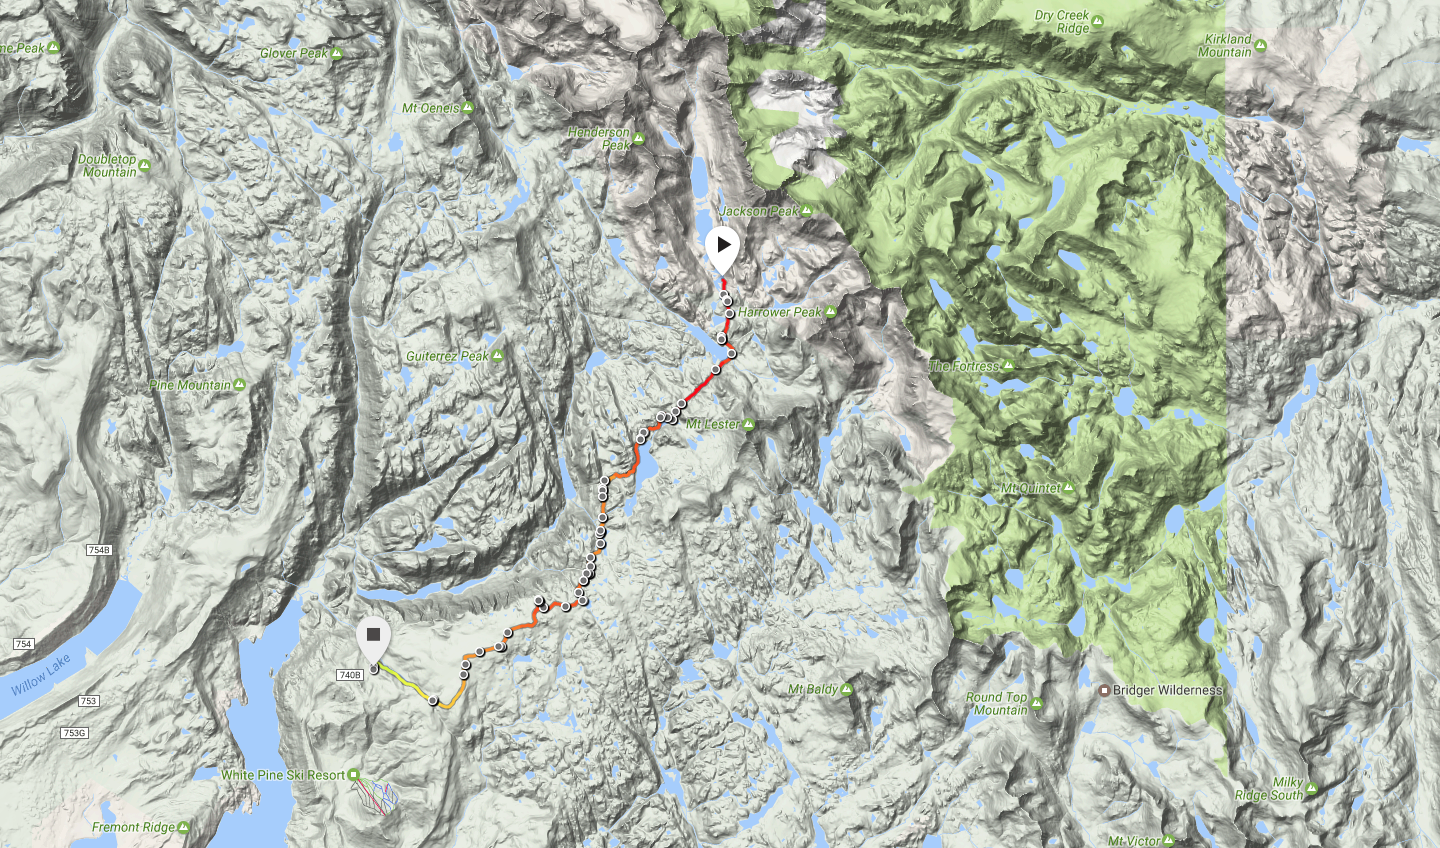 Wind River Range Wyoming Map.Wyoming Wind River Range Titcomb Lakes To Trails End Campground